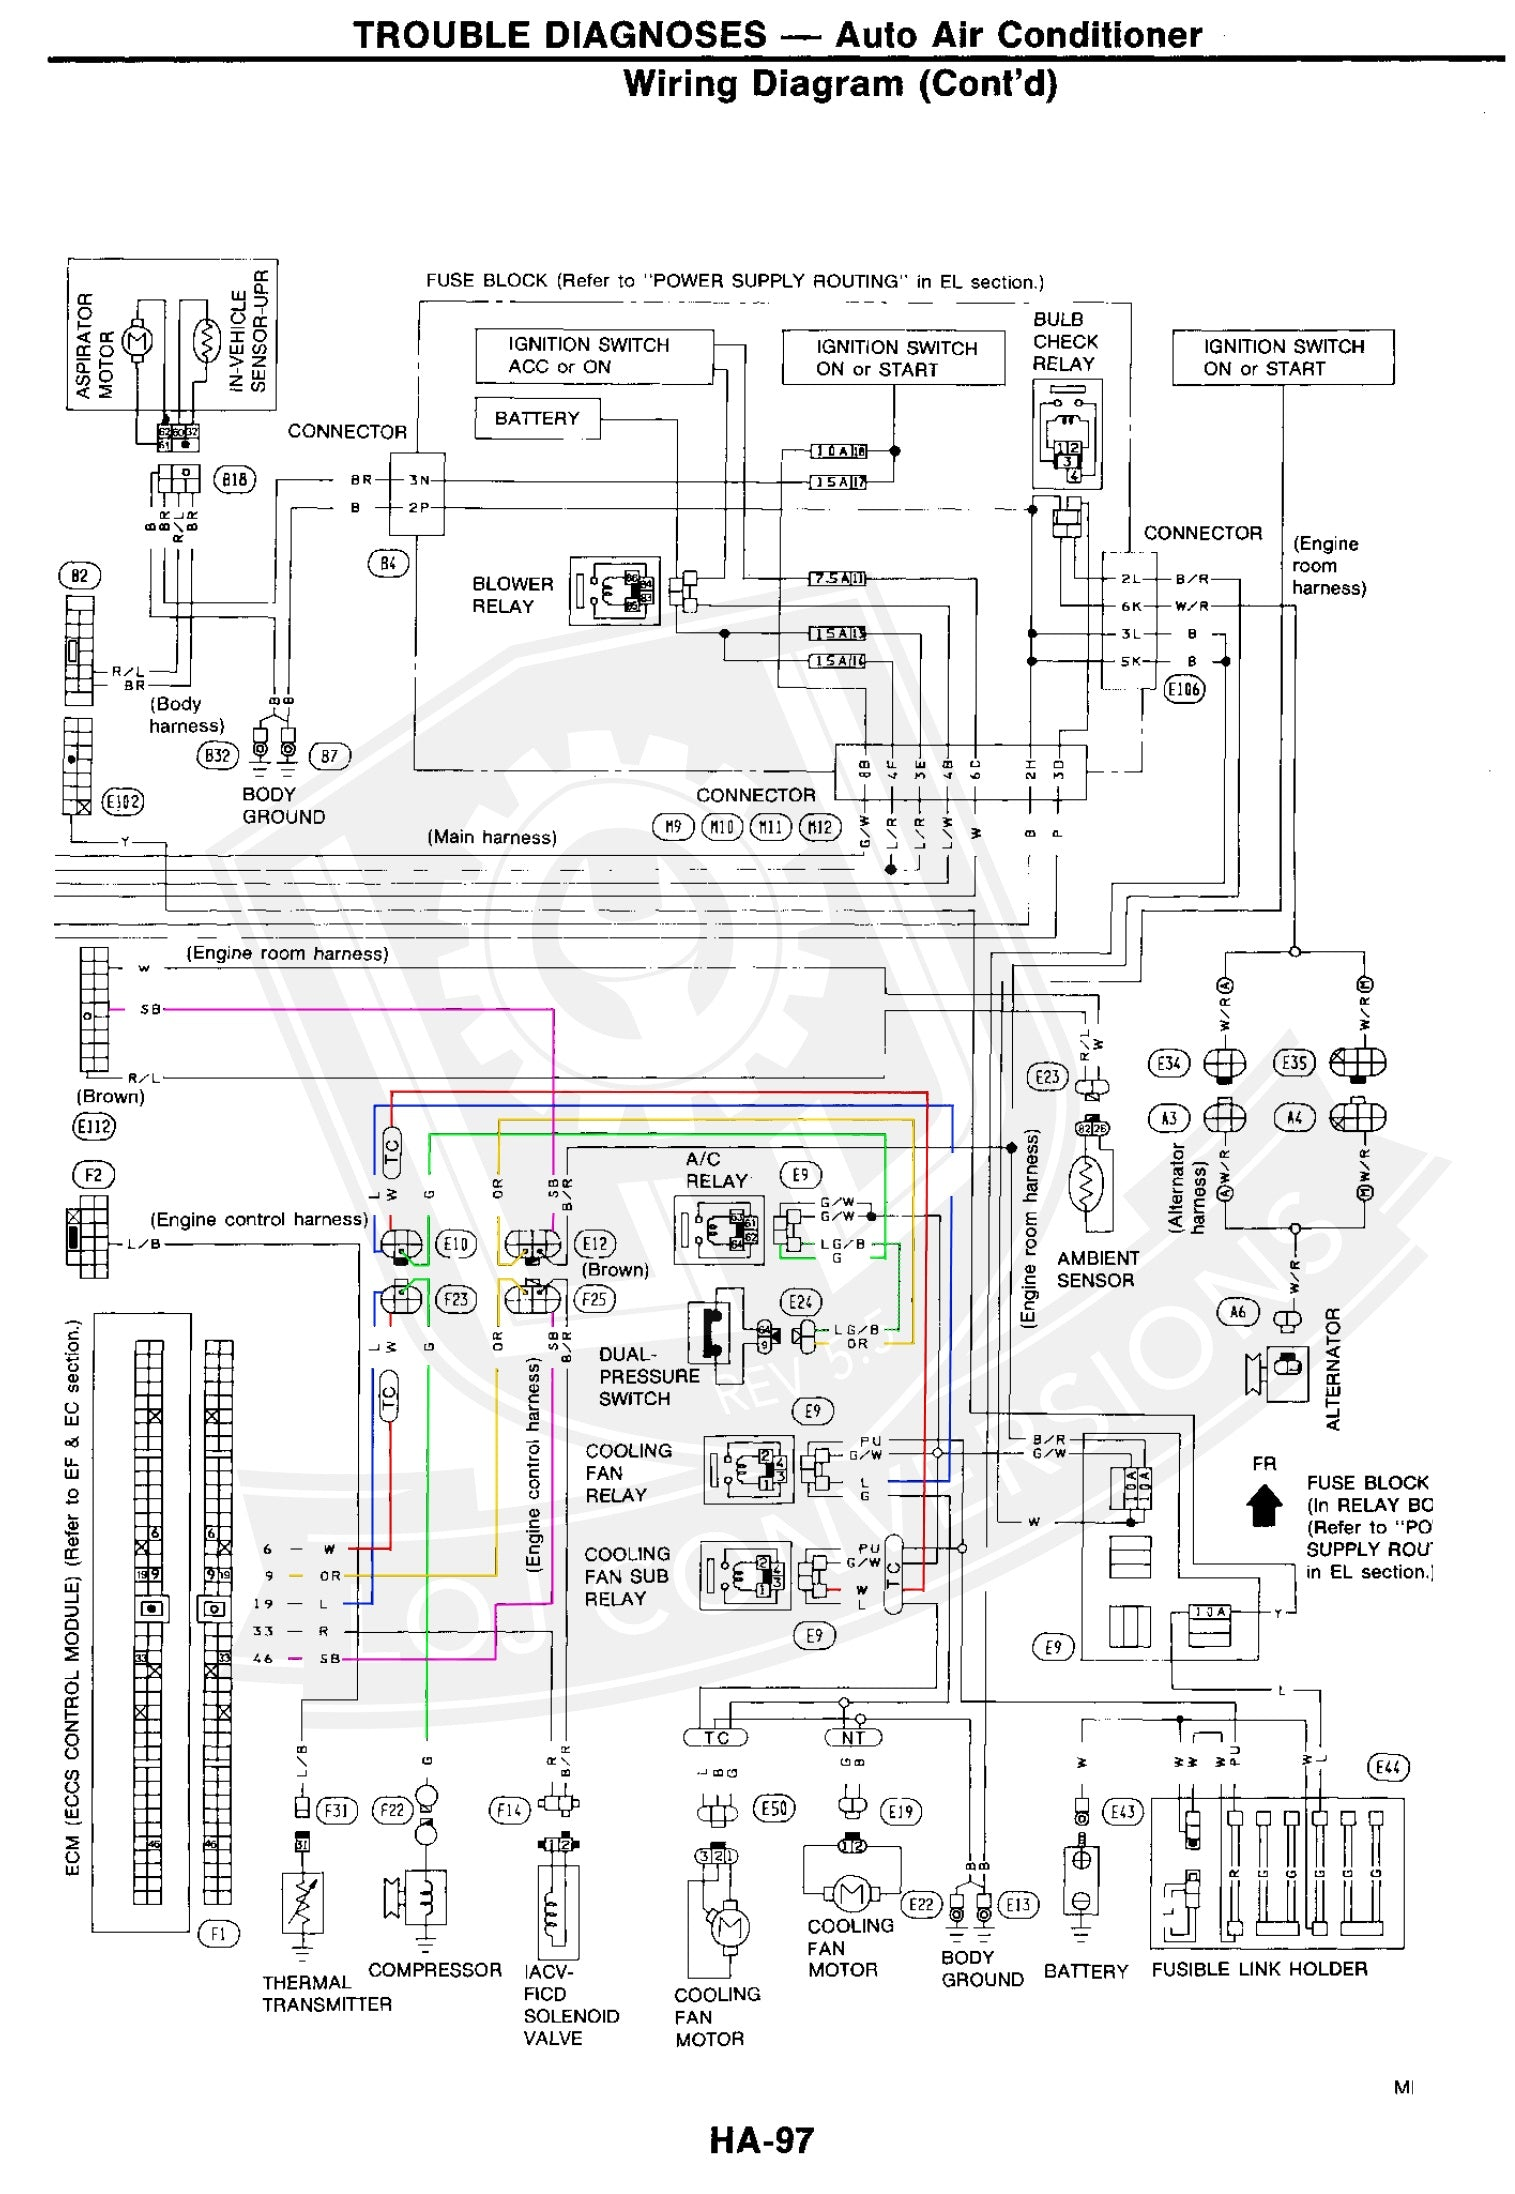 86 nissan 300zx engine diagram wiring library tt 300zx coolant diagram 1994 300zx engine wiring diagram just wiring data rh ag skiphire co uk 1986 nissan 300zx